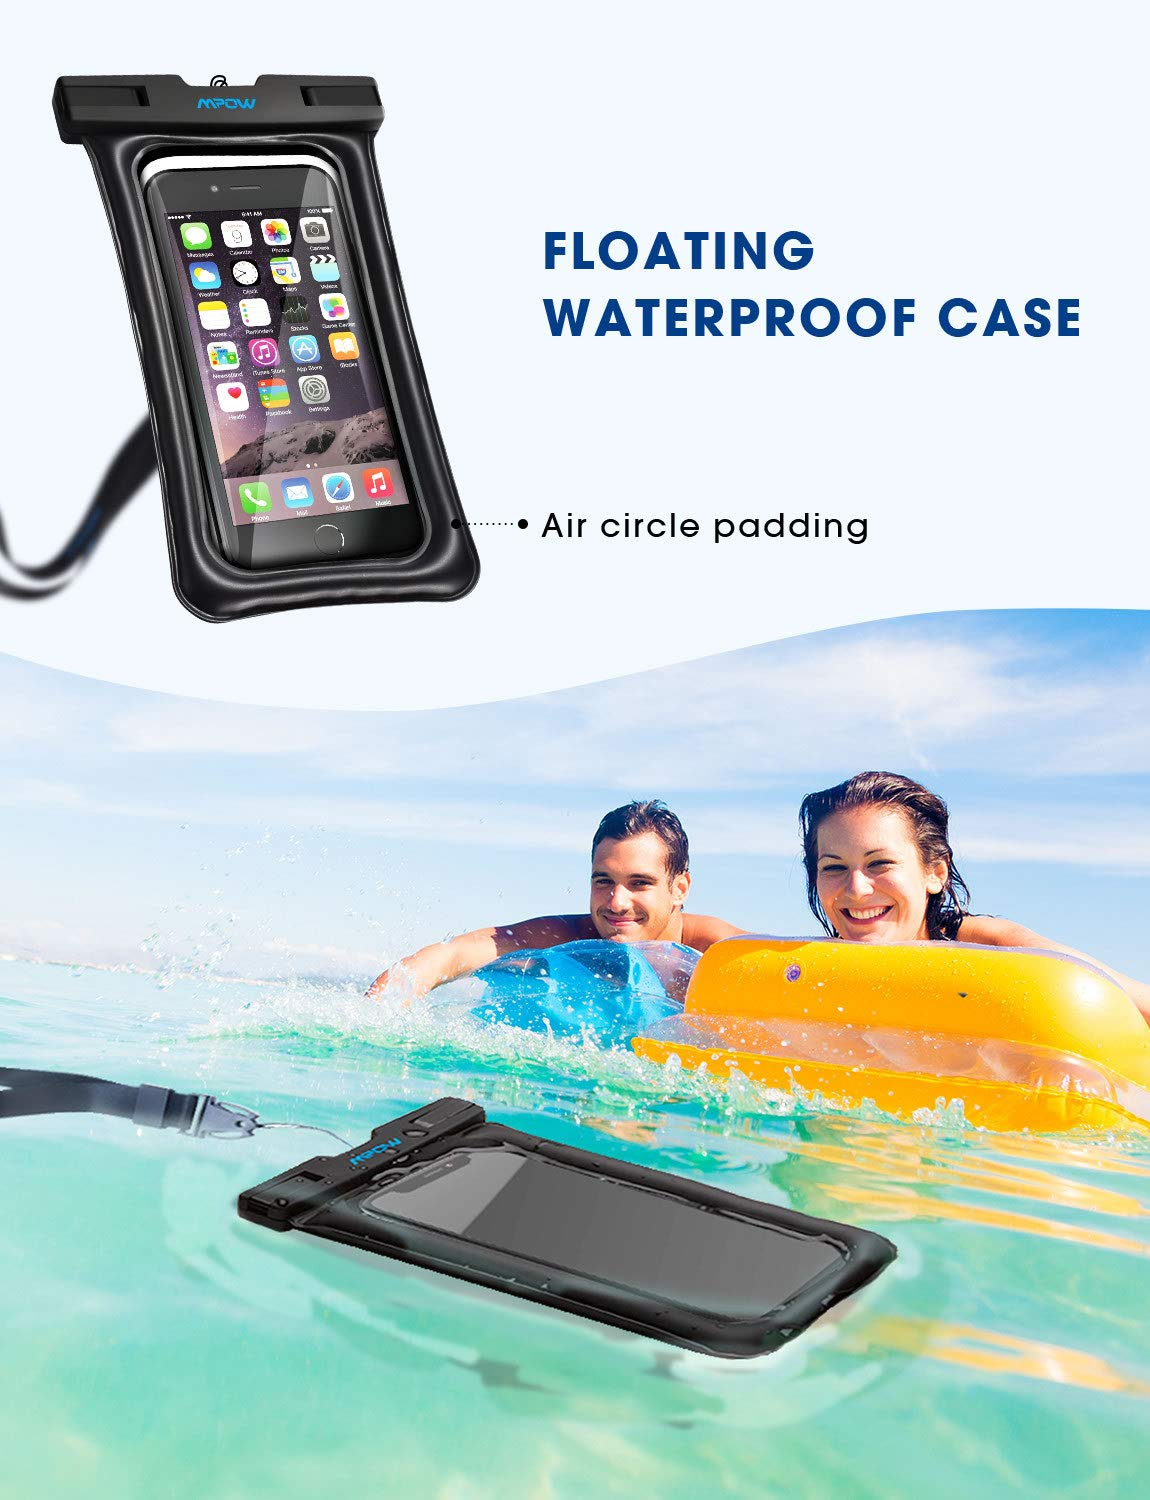 brand new 813b7 66997 Mpow 084 Waterproof Phone Pouch Floating, IPX8 Universal Waterproof Case  Underwater Dry Bag Compatible iPhone Xs Max/Xr/X/8/8plus/7/7plus Galaxy ...